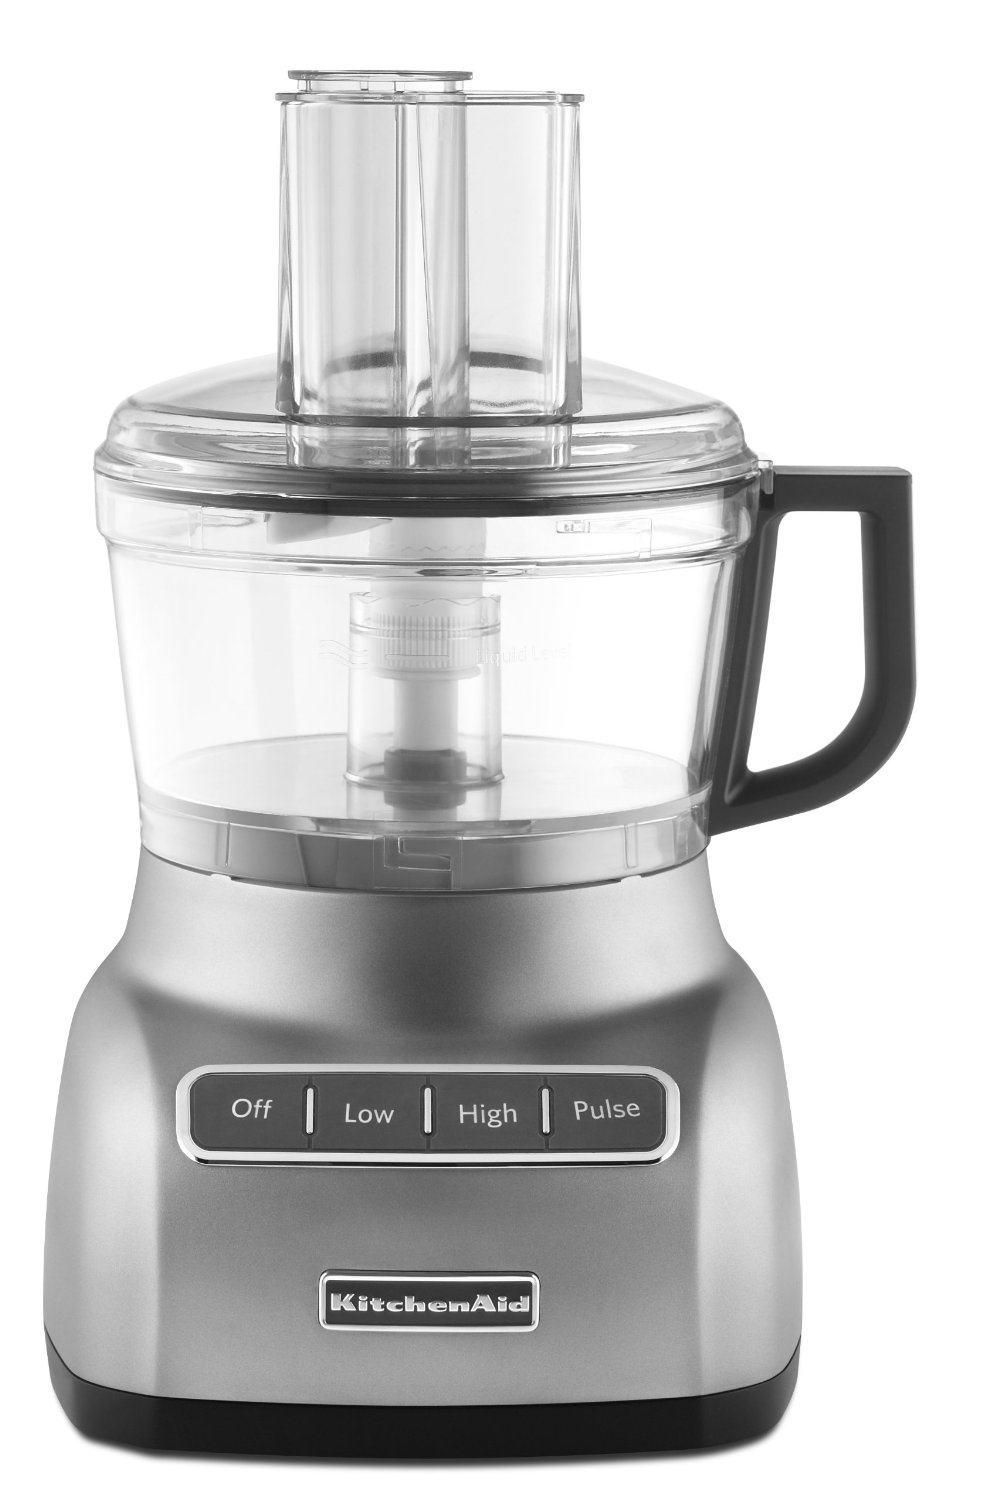 Kitchenaid Kfp0711cu 7 Cup Food Processor Review Food